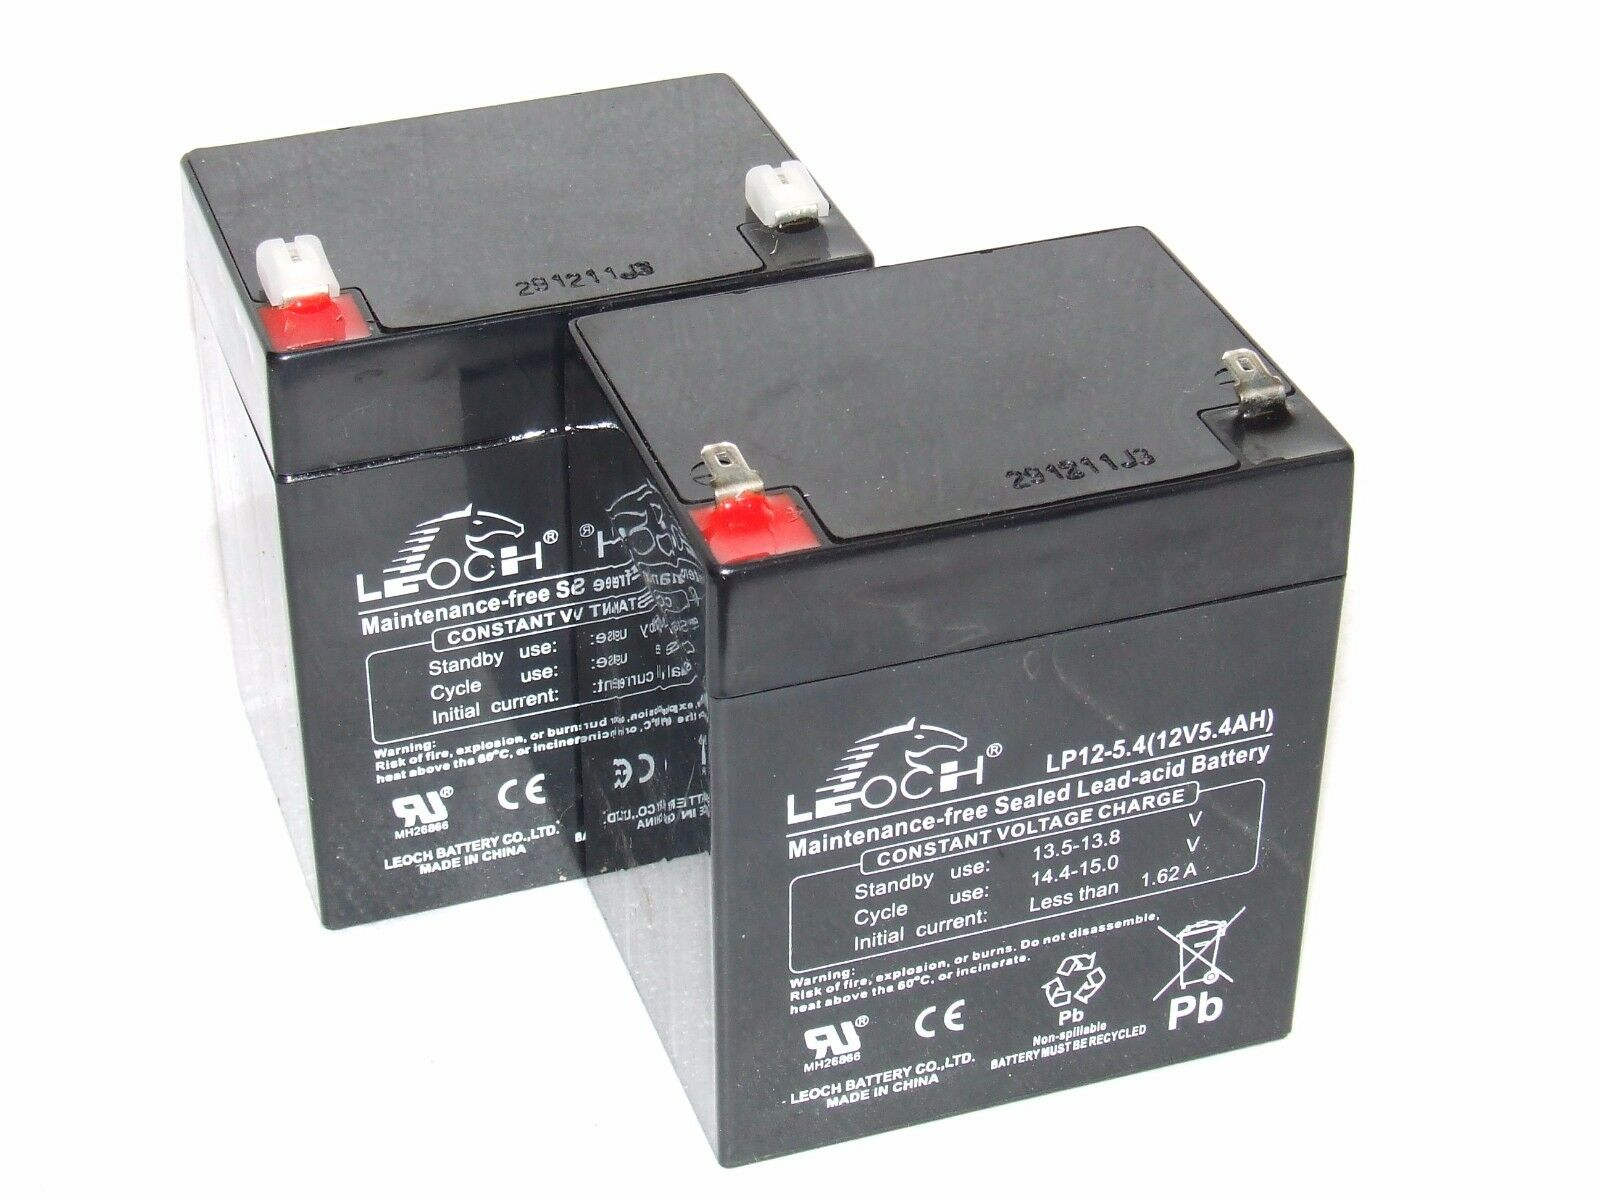 2 (A Pair) X Leoch 12V 5.4AH (Up-rated) BATTERIES for MINI LAKESTAR